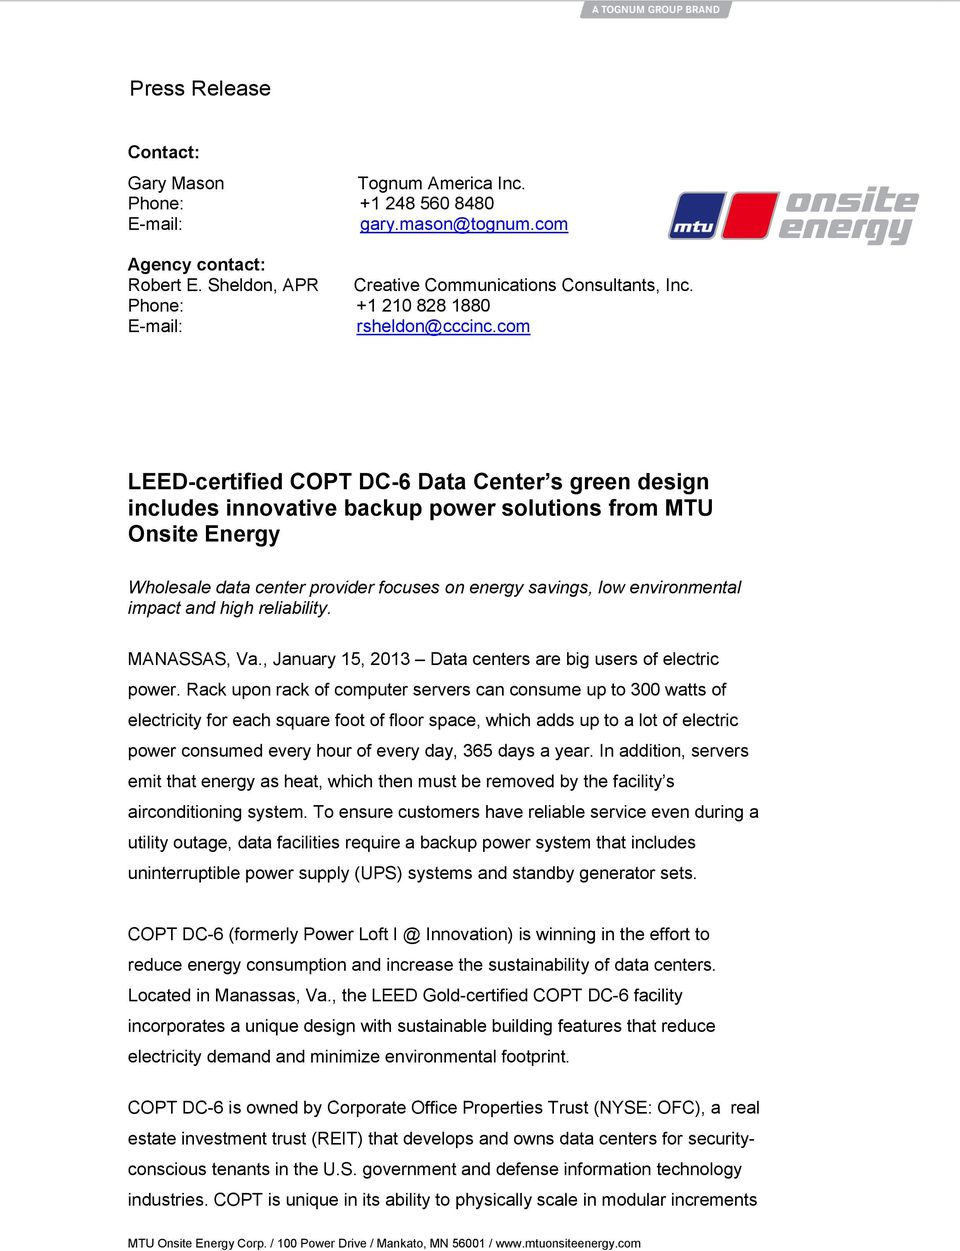 com LEED-certified COPT DC-6 Data Center s green design includes innovative backup power solutions from MTU Onsite Energy Wholesale data center provider focuses on energy savings, low environmental